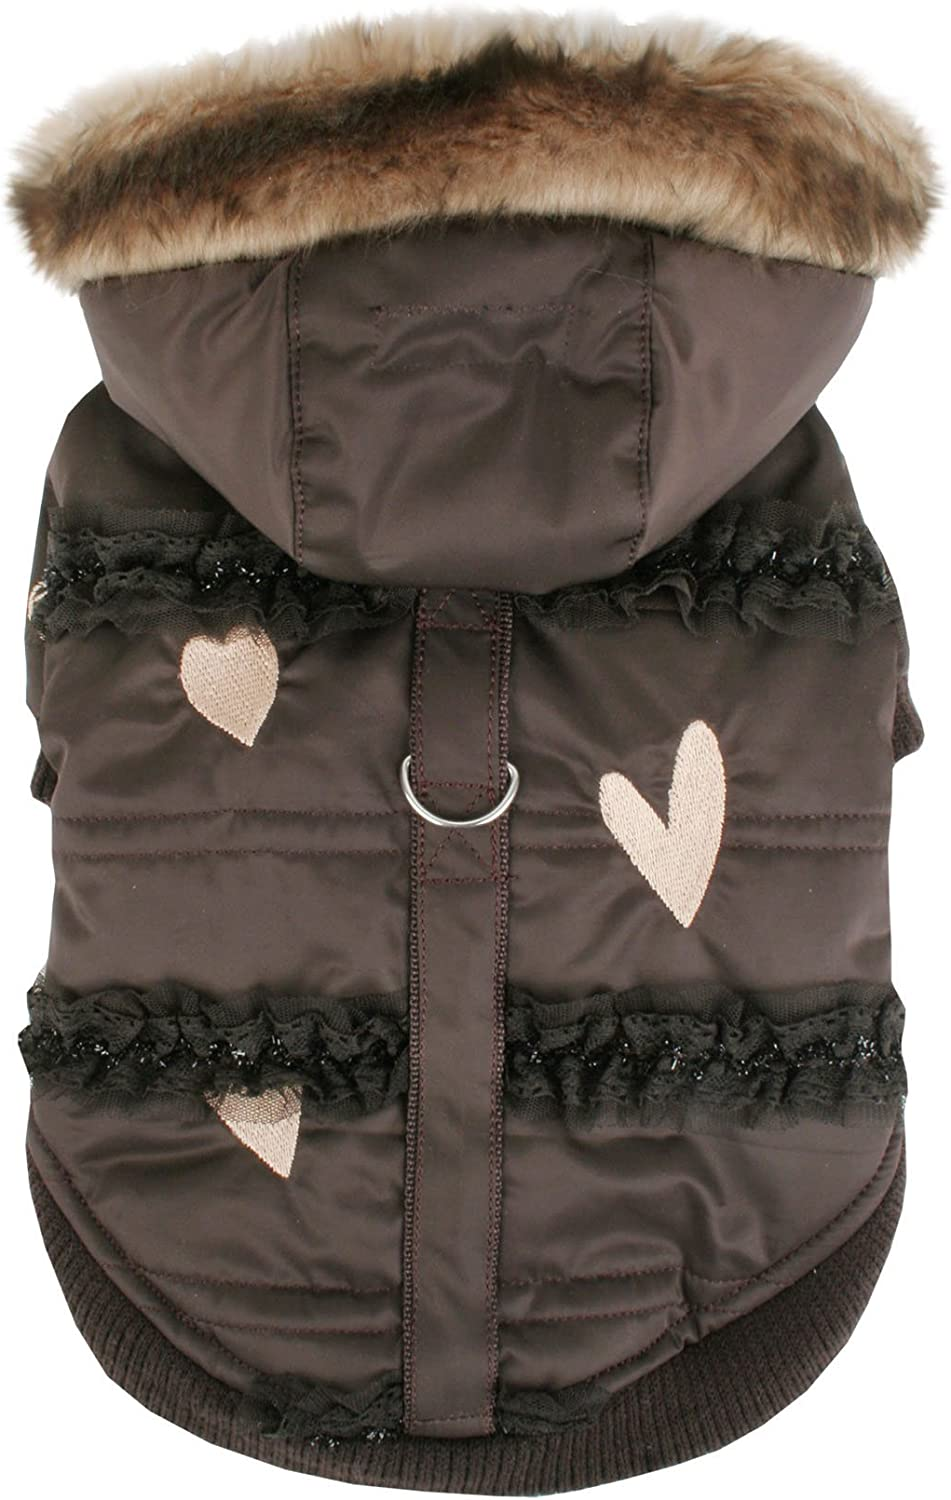 Pinkaholic It is very popular New York Innocence Winter for Large Brown Dogs Coat Direct stock discount